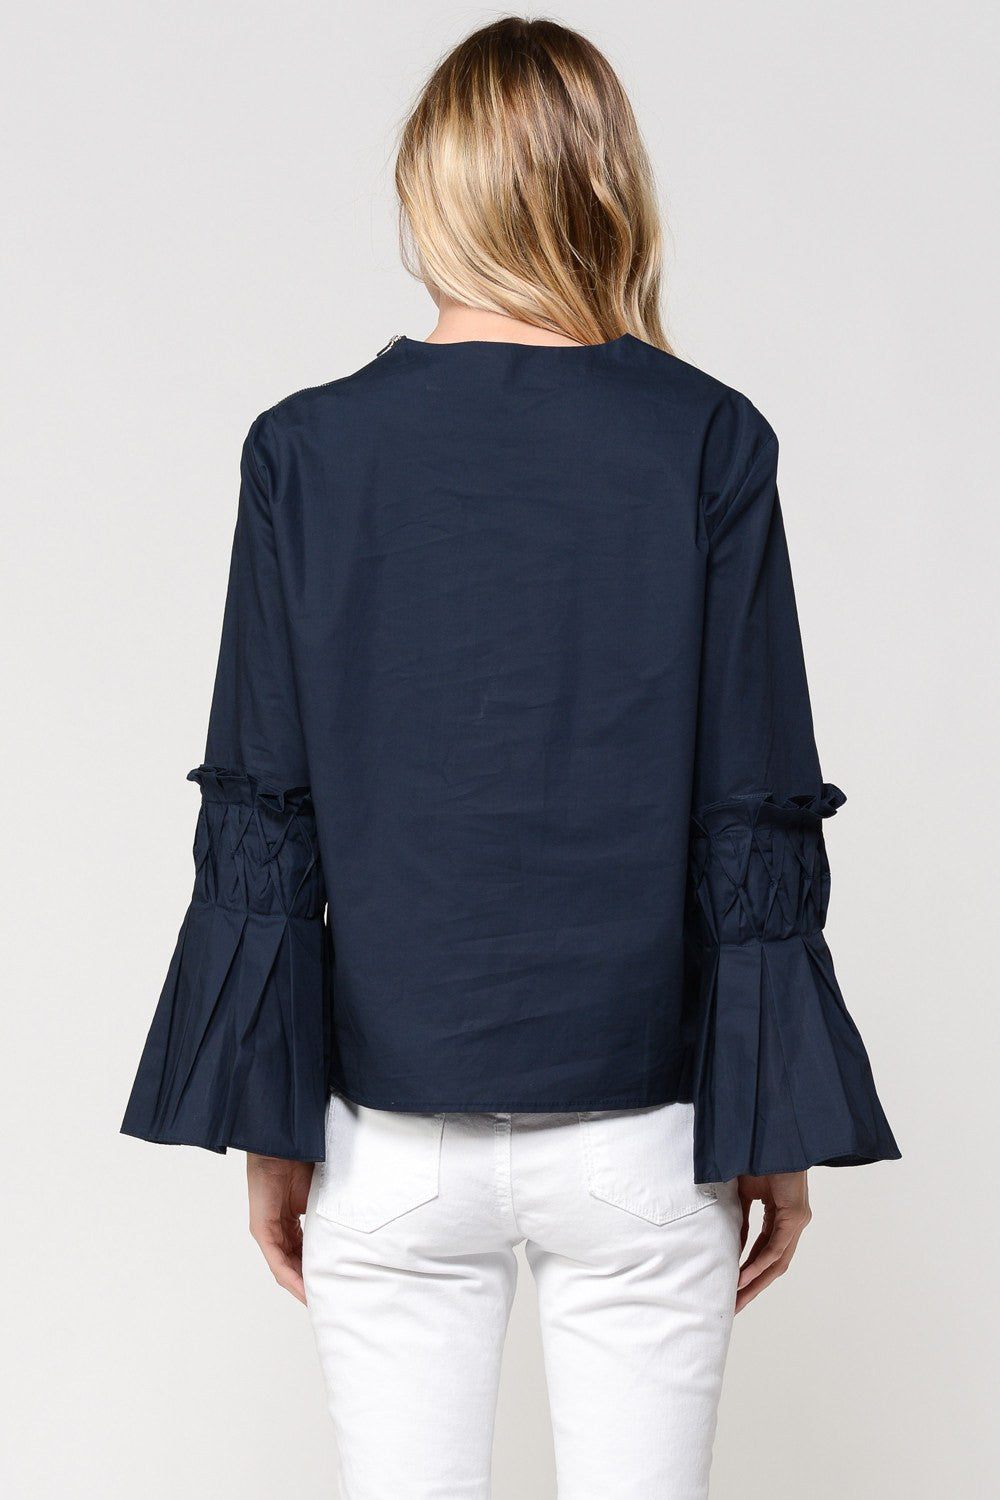 Swollen Rivers Origami Blouse by Sister Jane